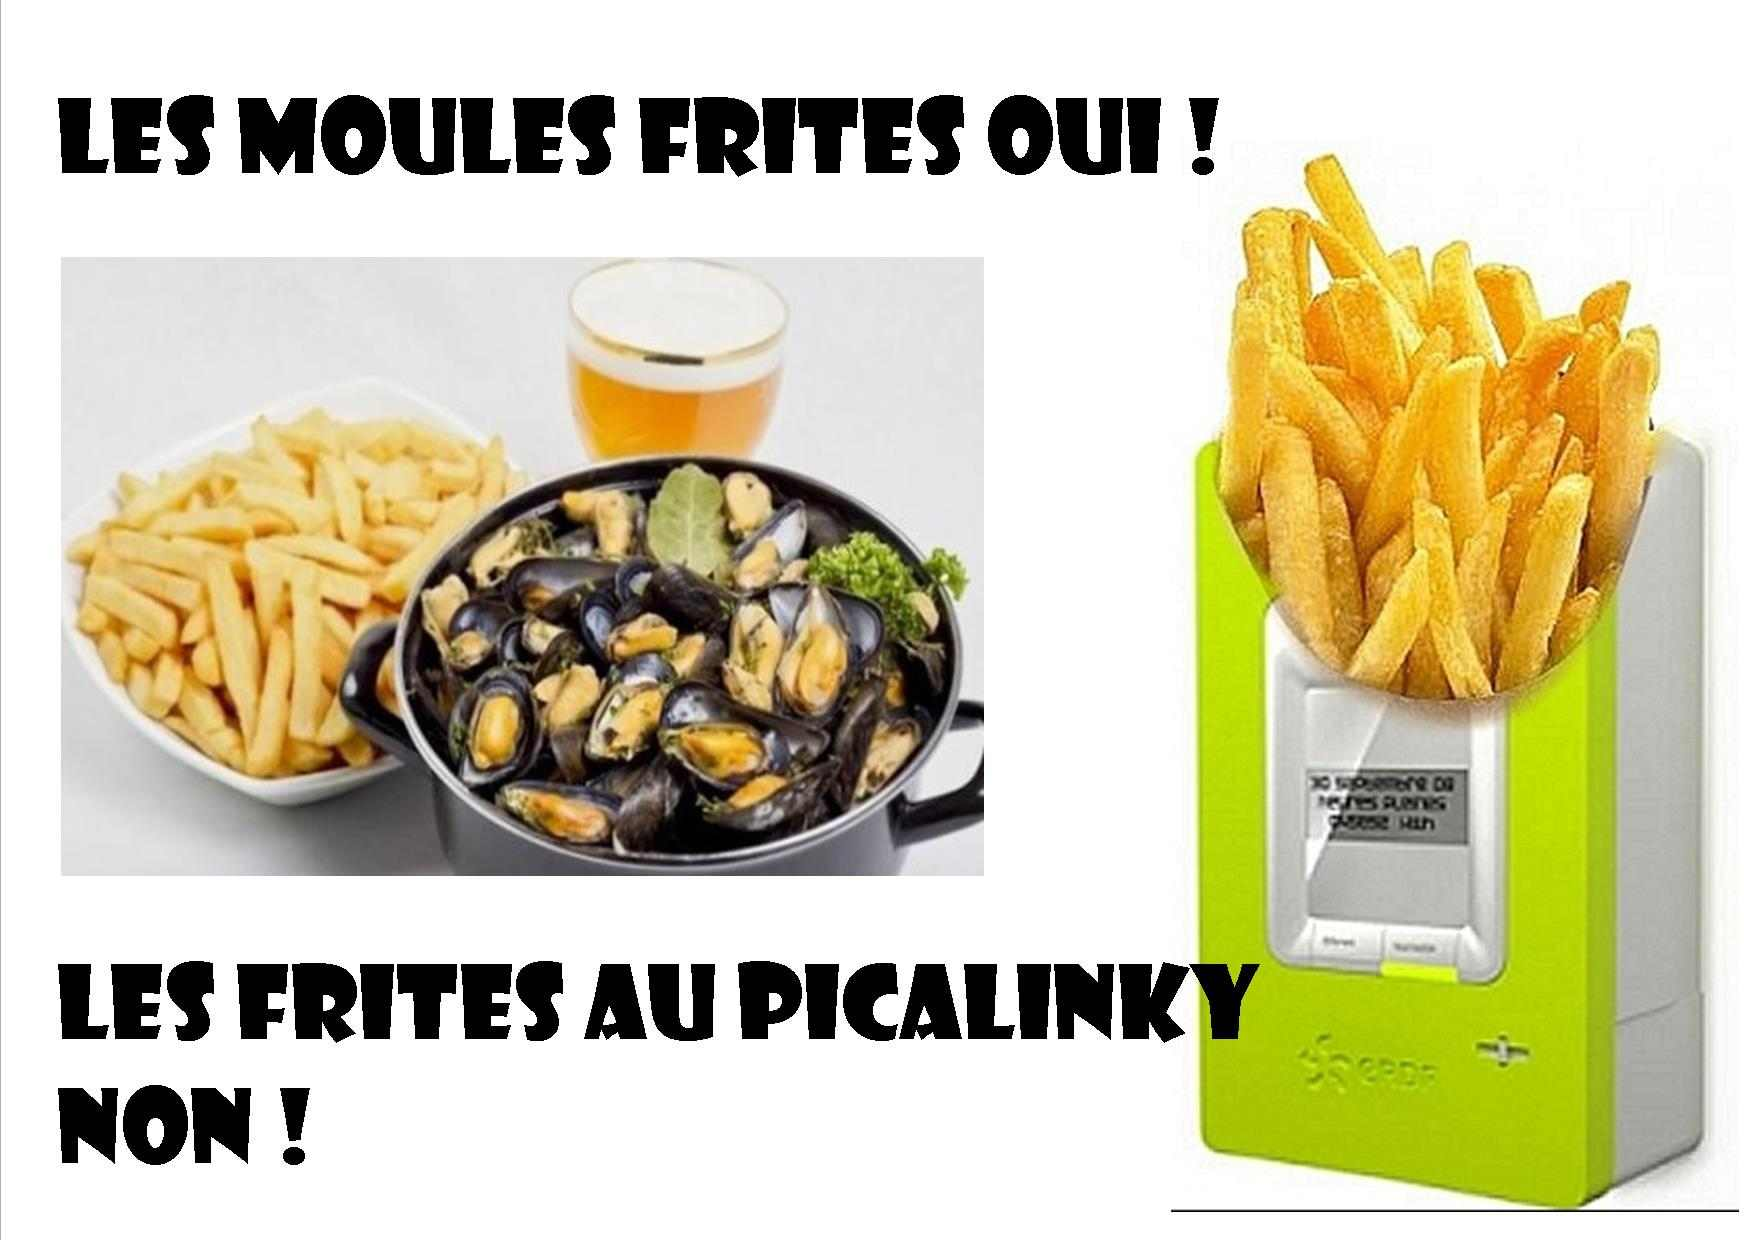 Affiche braderie--picalinky.jpg